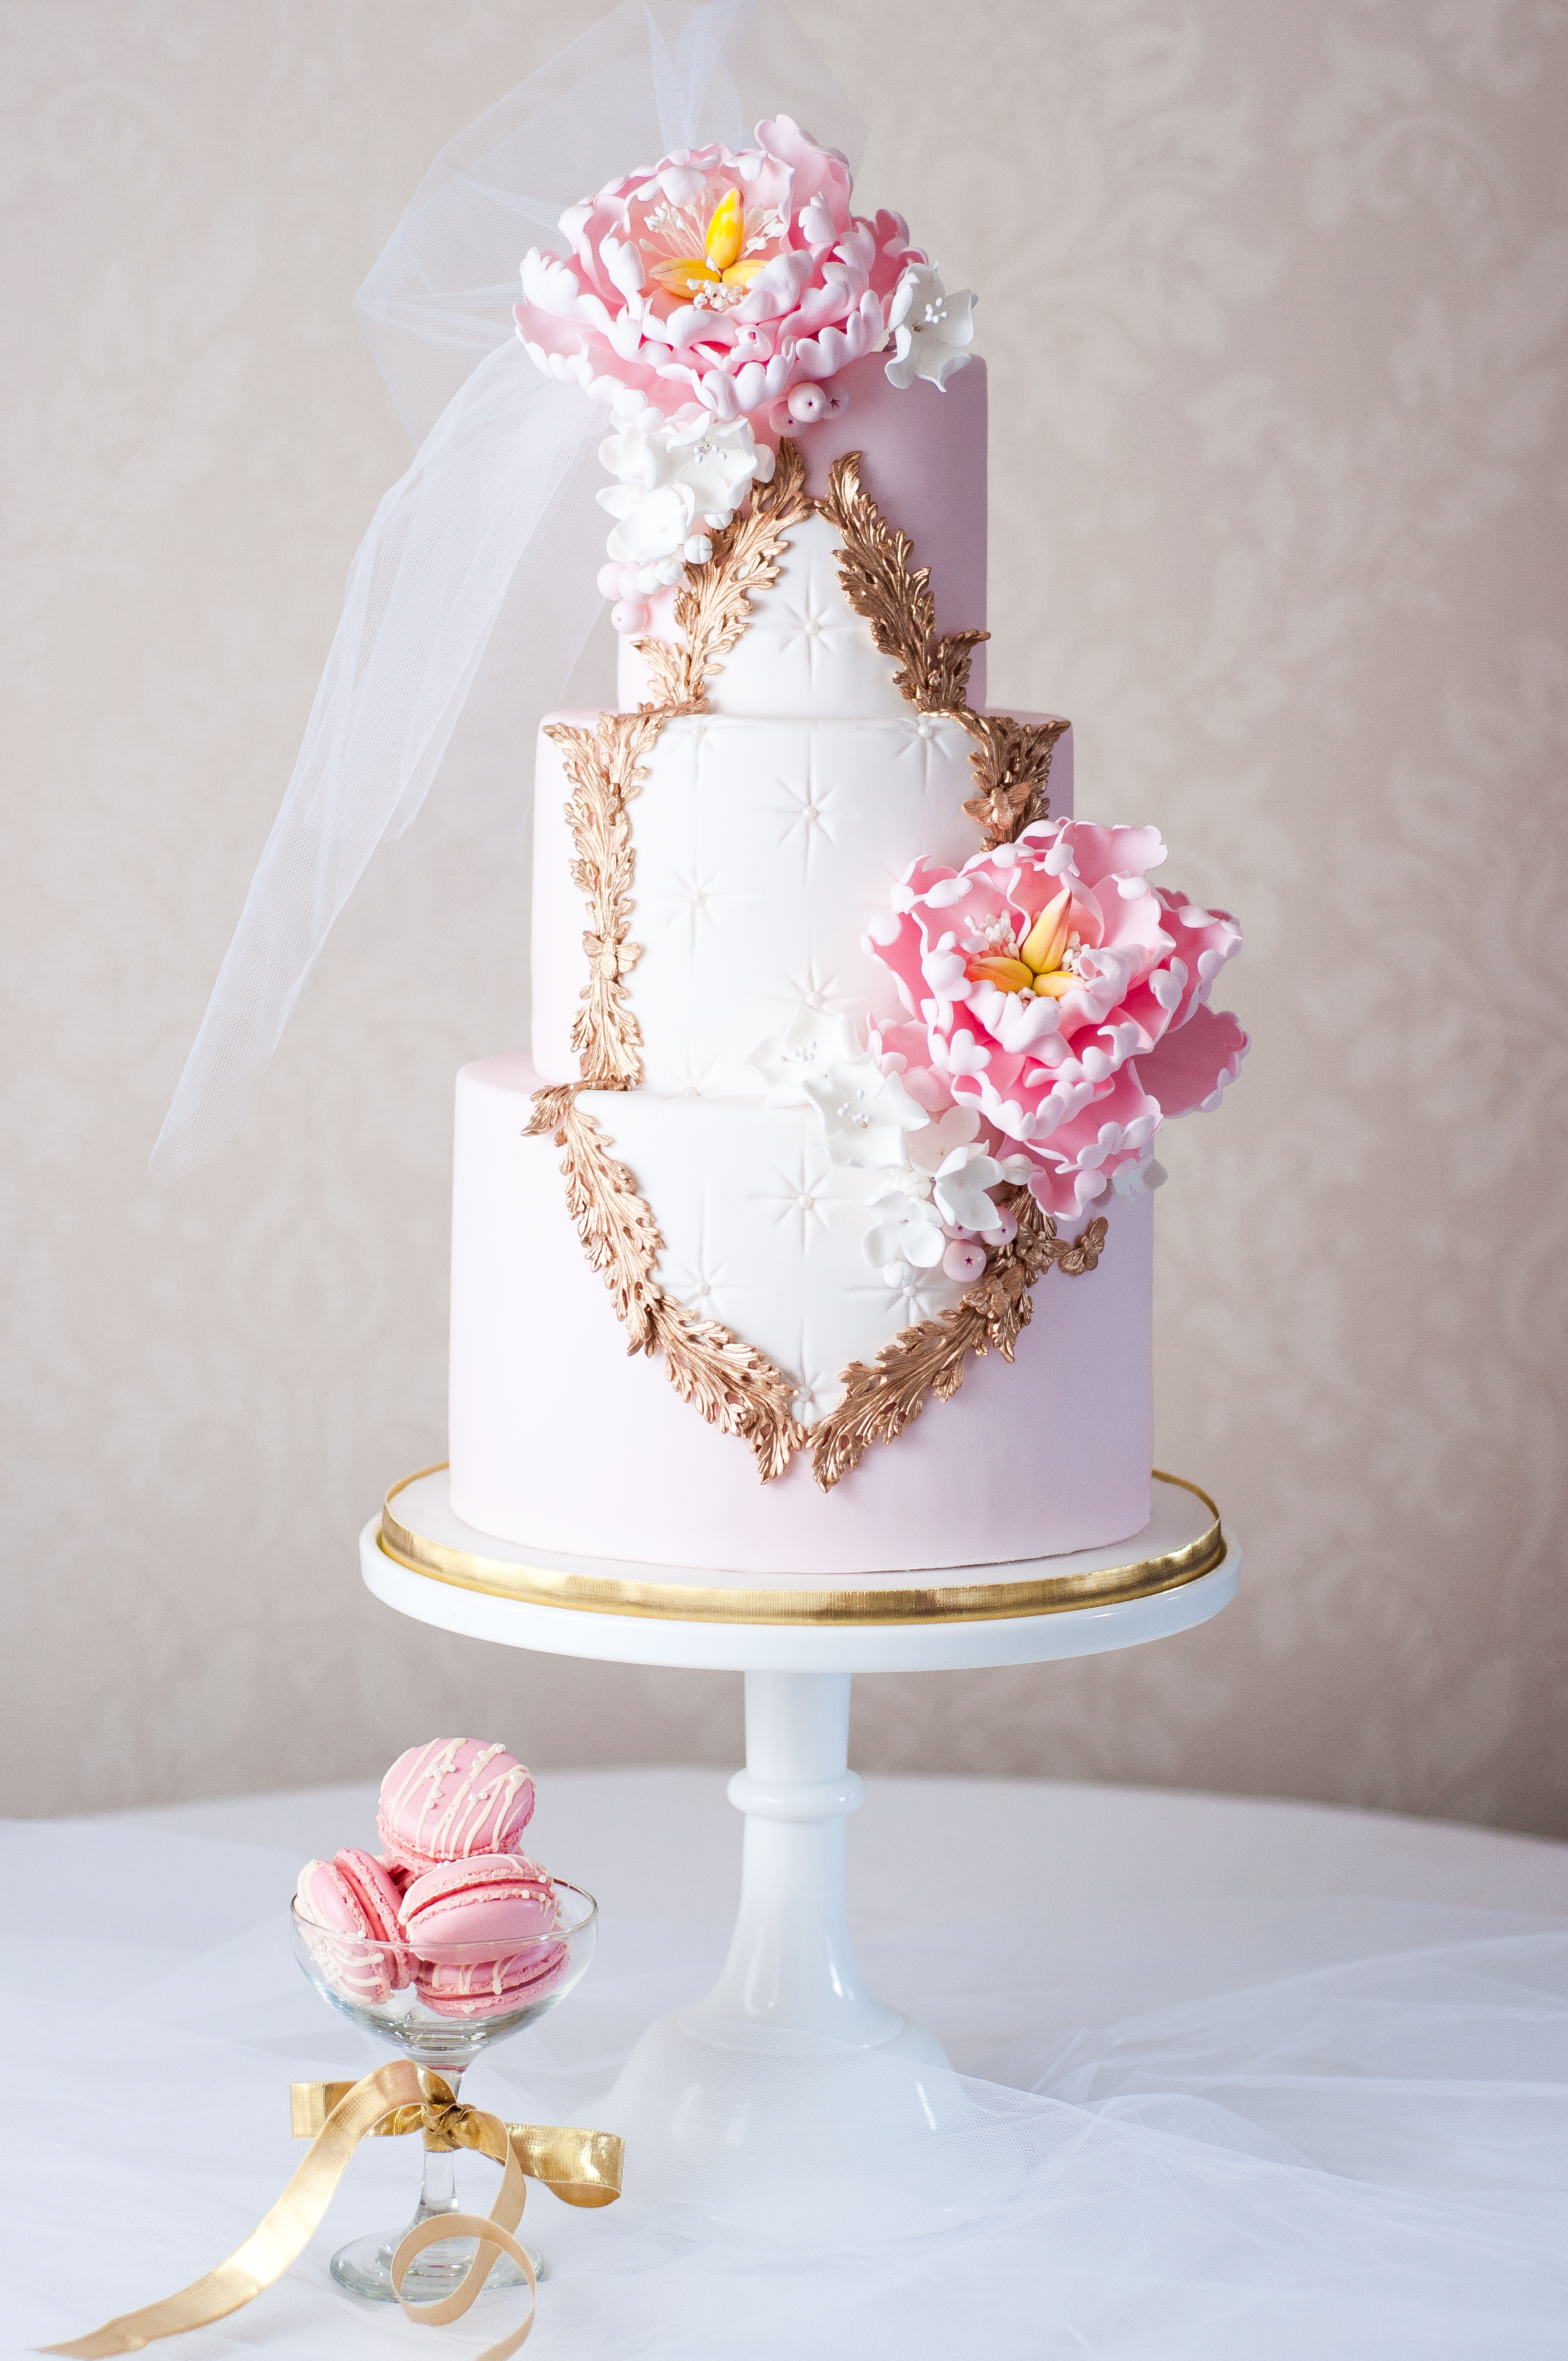 All baby Pink Rococo wedding cake